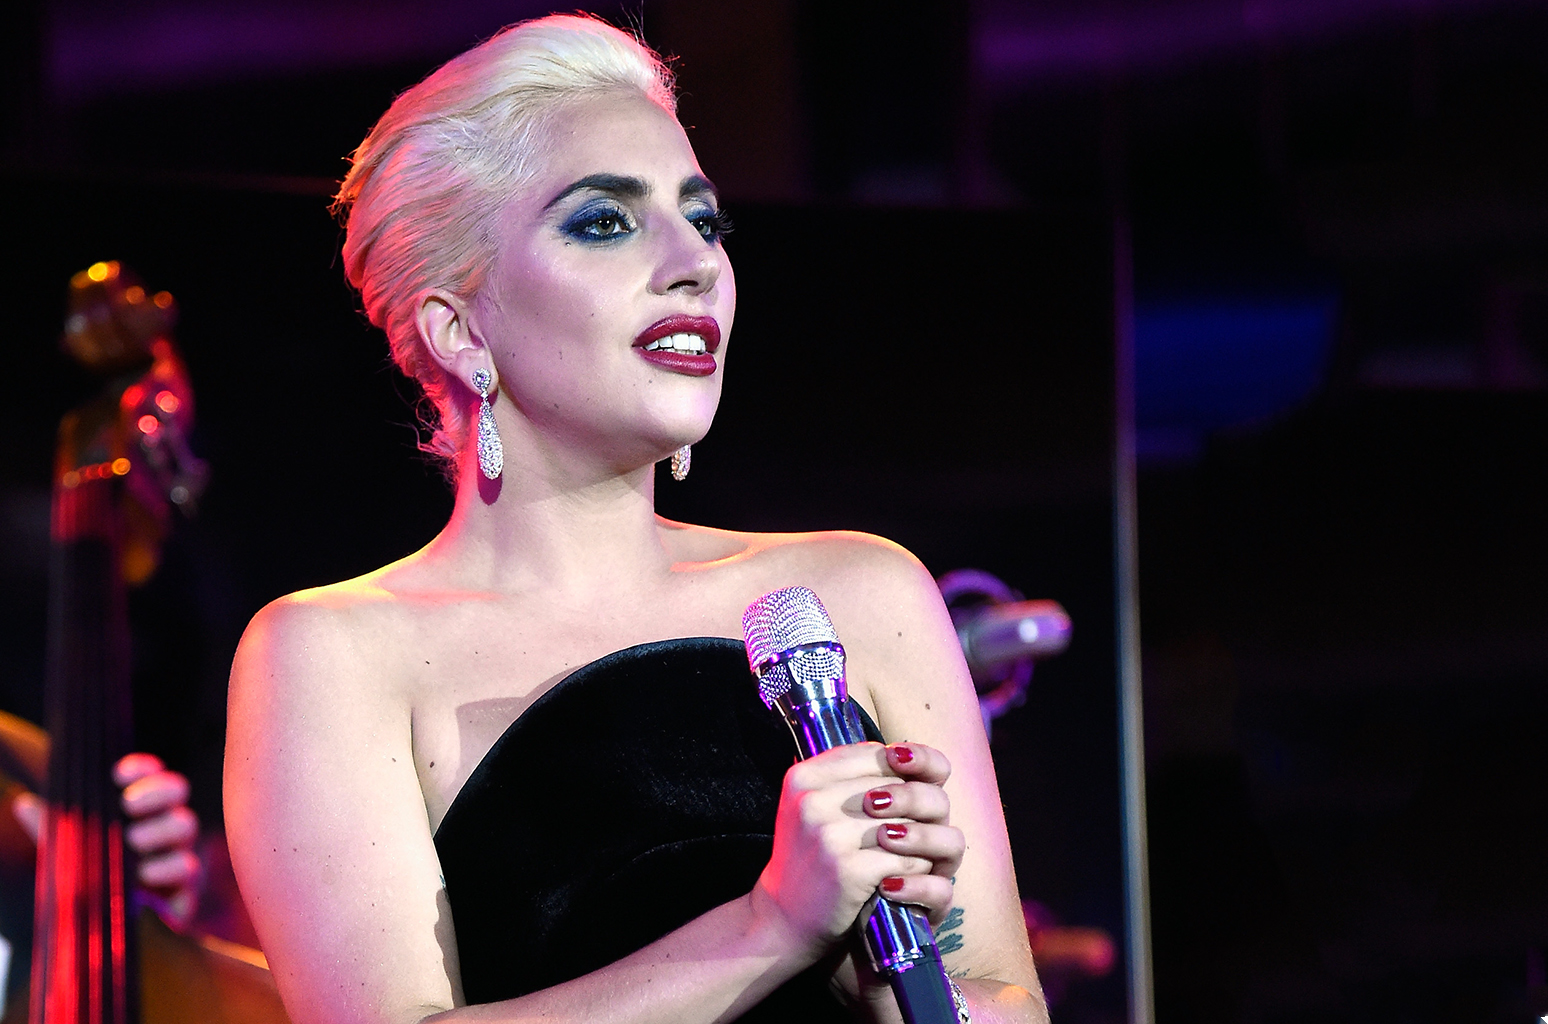 Lady Gaga revealed she suffers from fibromyalgia, to release a film on her disorder